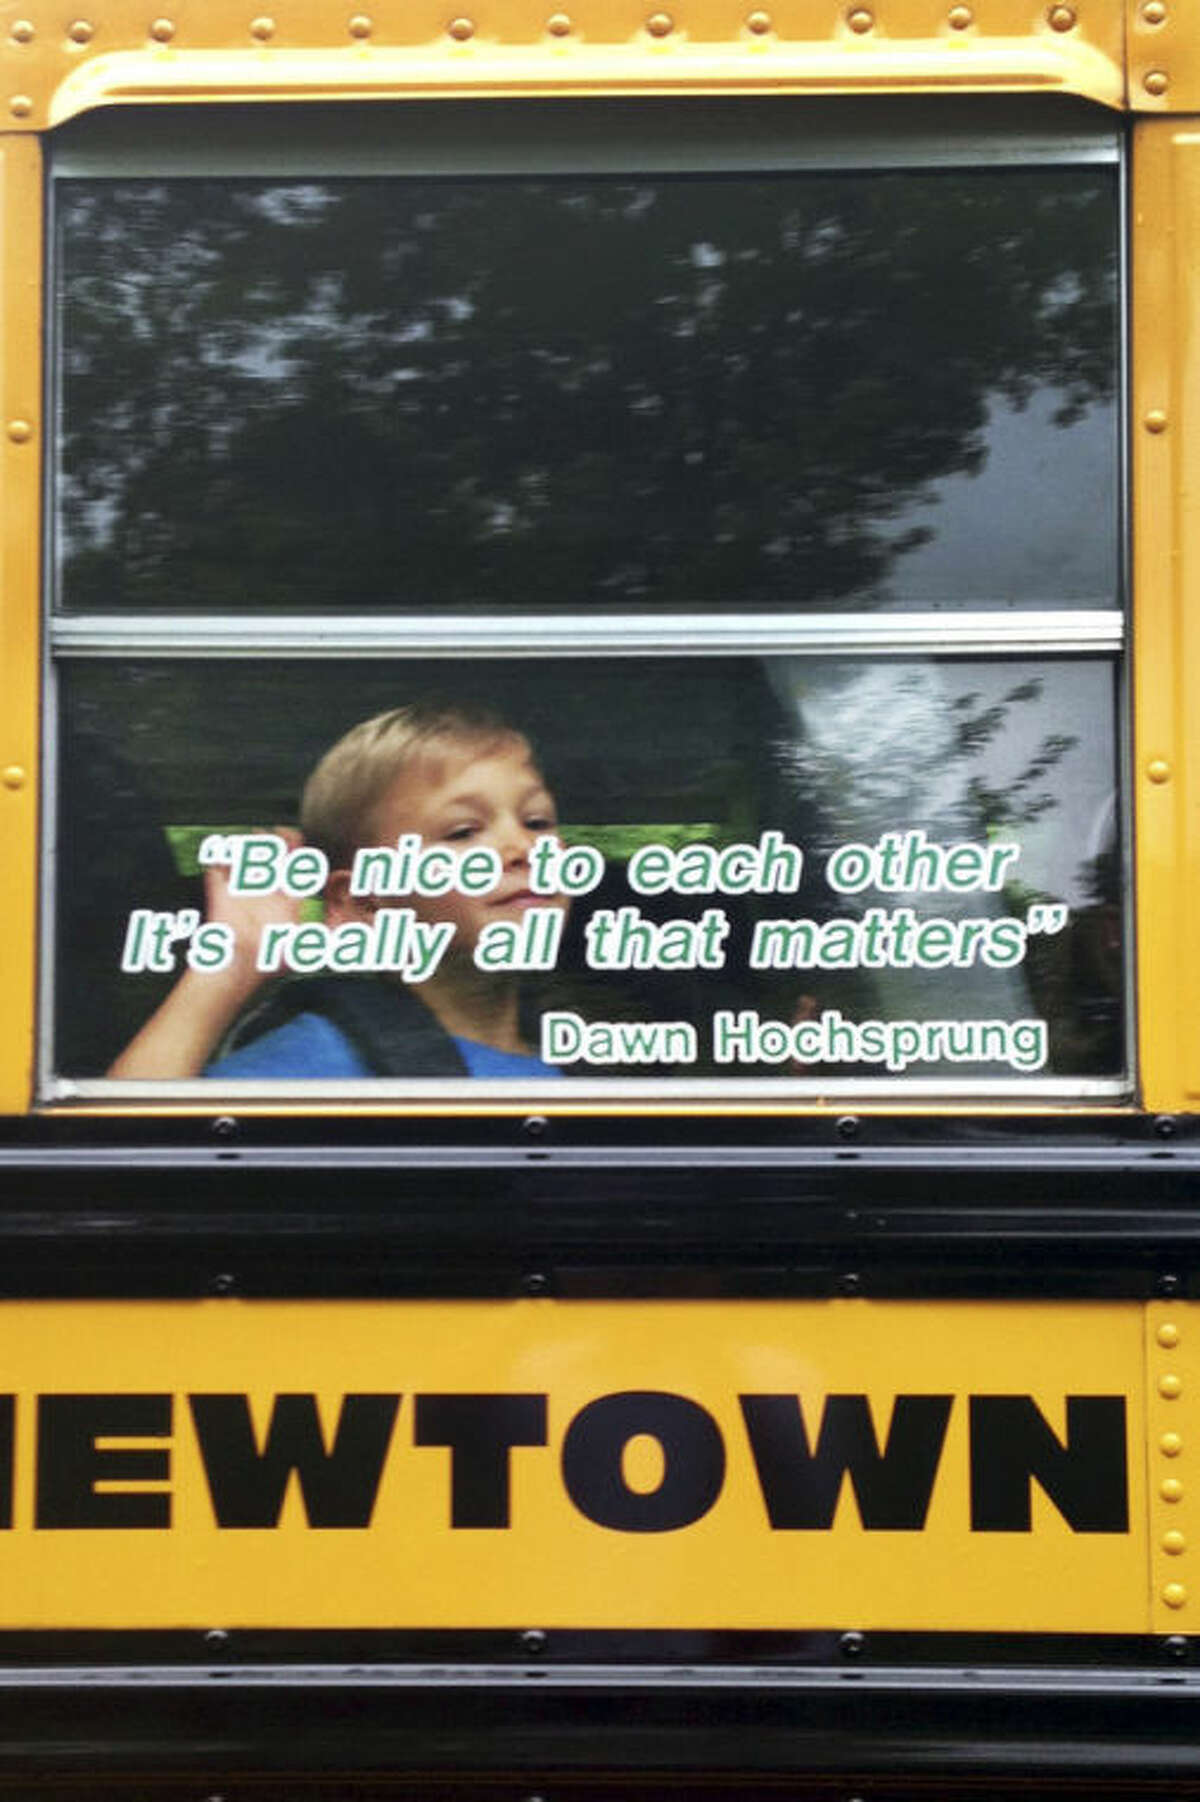 In this photo provided by Craig Hoekenga, his son Trey Hoekenga, a kindergarten student at Sandy Hook Elementary School, waves from the school bus on the first day of school Tuesday, Aug. 27, 2013, in Newtown, Conn. On the bus window is a quote by the late principal, Dawn Hochsprung: